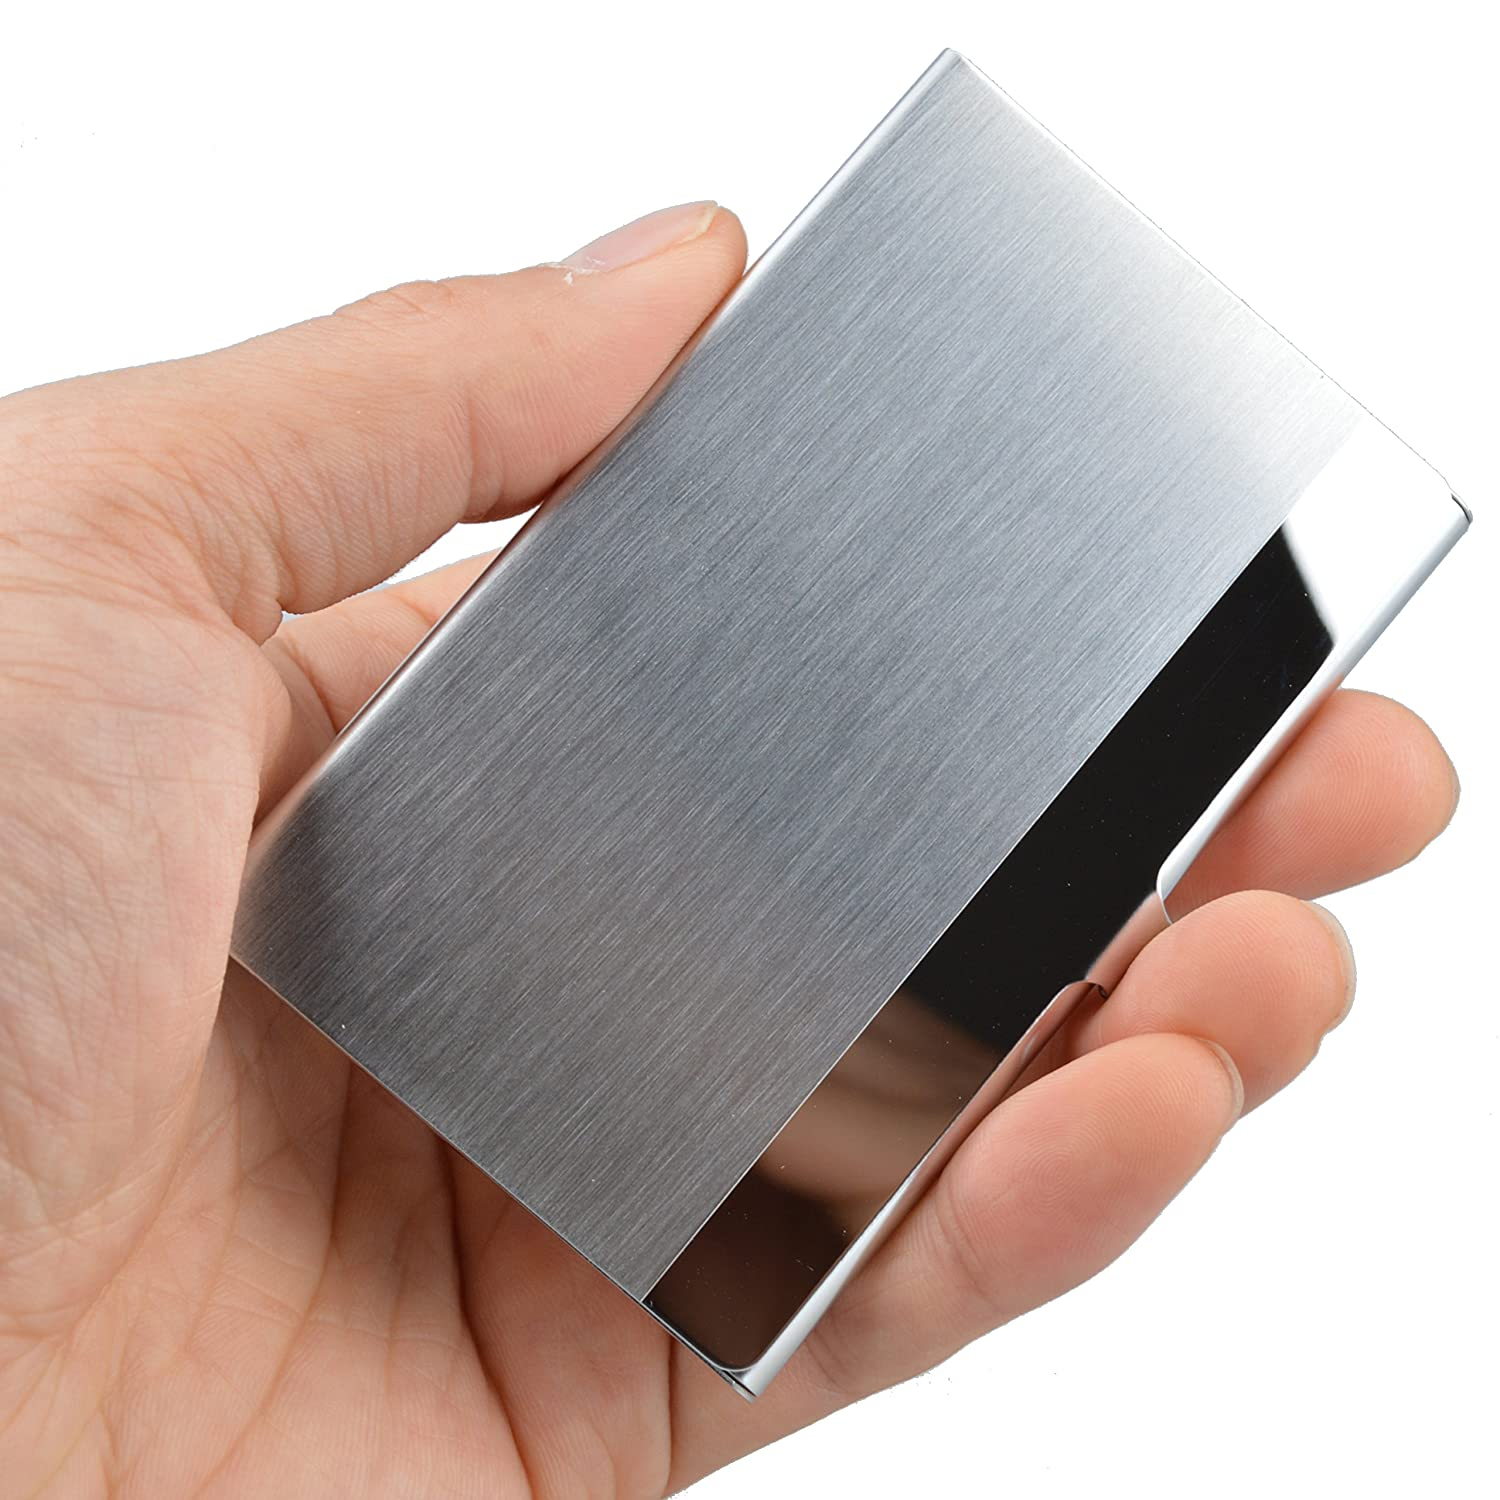 Amazon.com : MaxGear Professional Business Card Holder Business Card ...